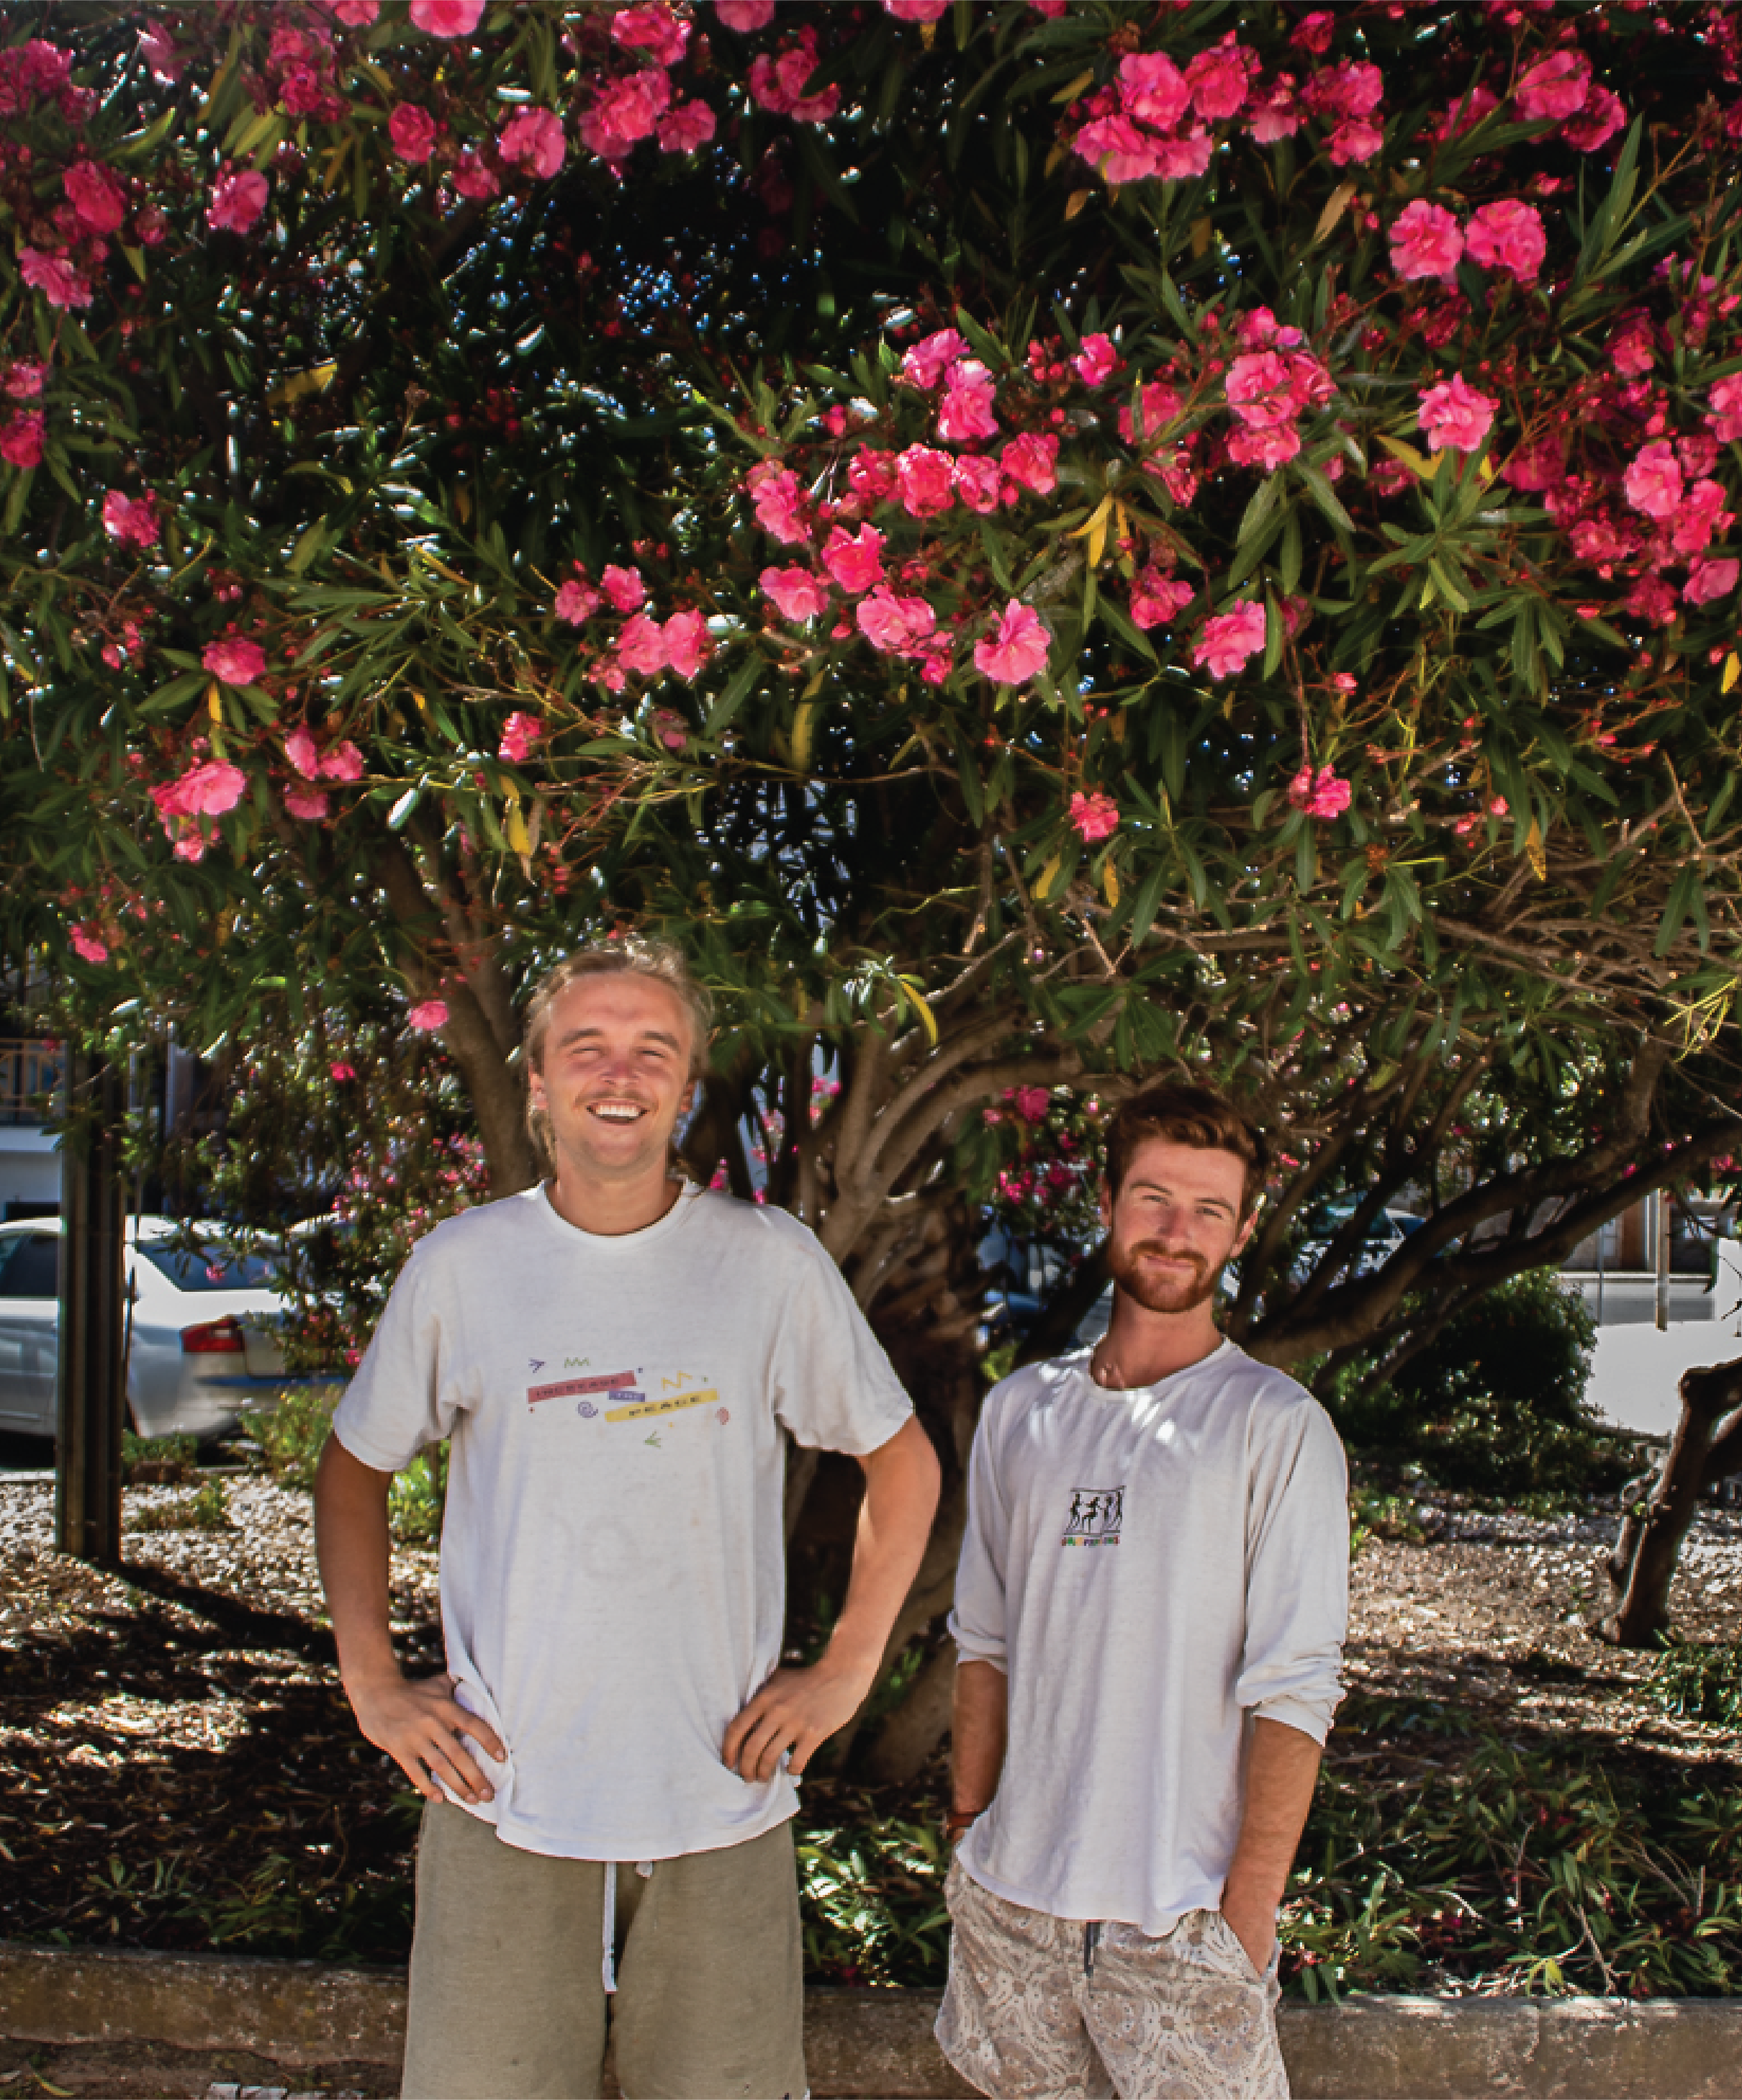 Jon Heslop has the wellbeing of artisans and consumers in mind with his company, Shakti Mats.